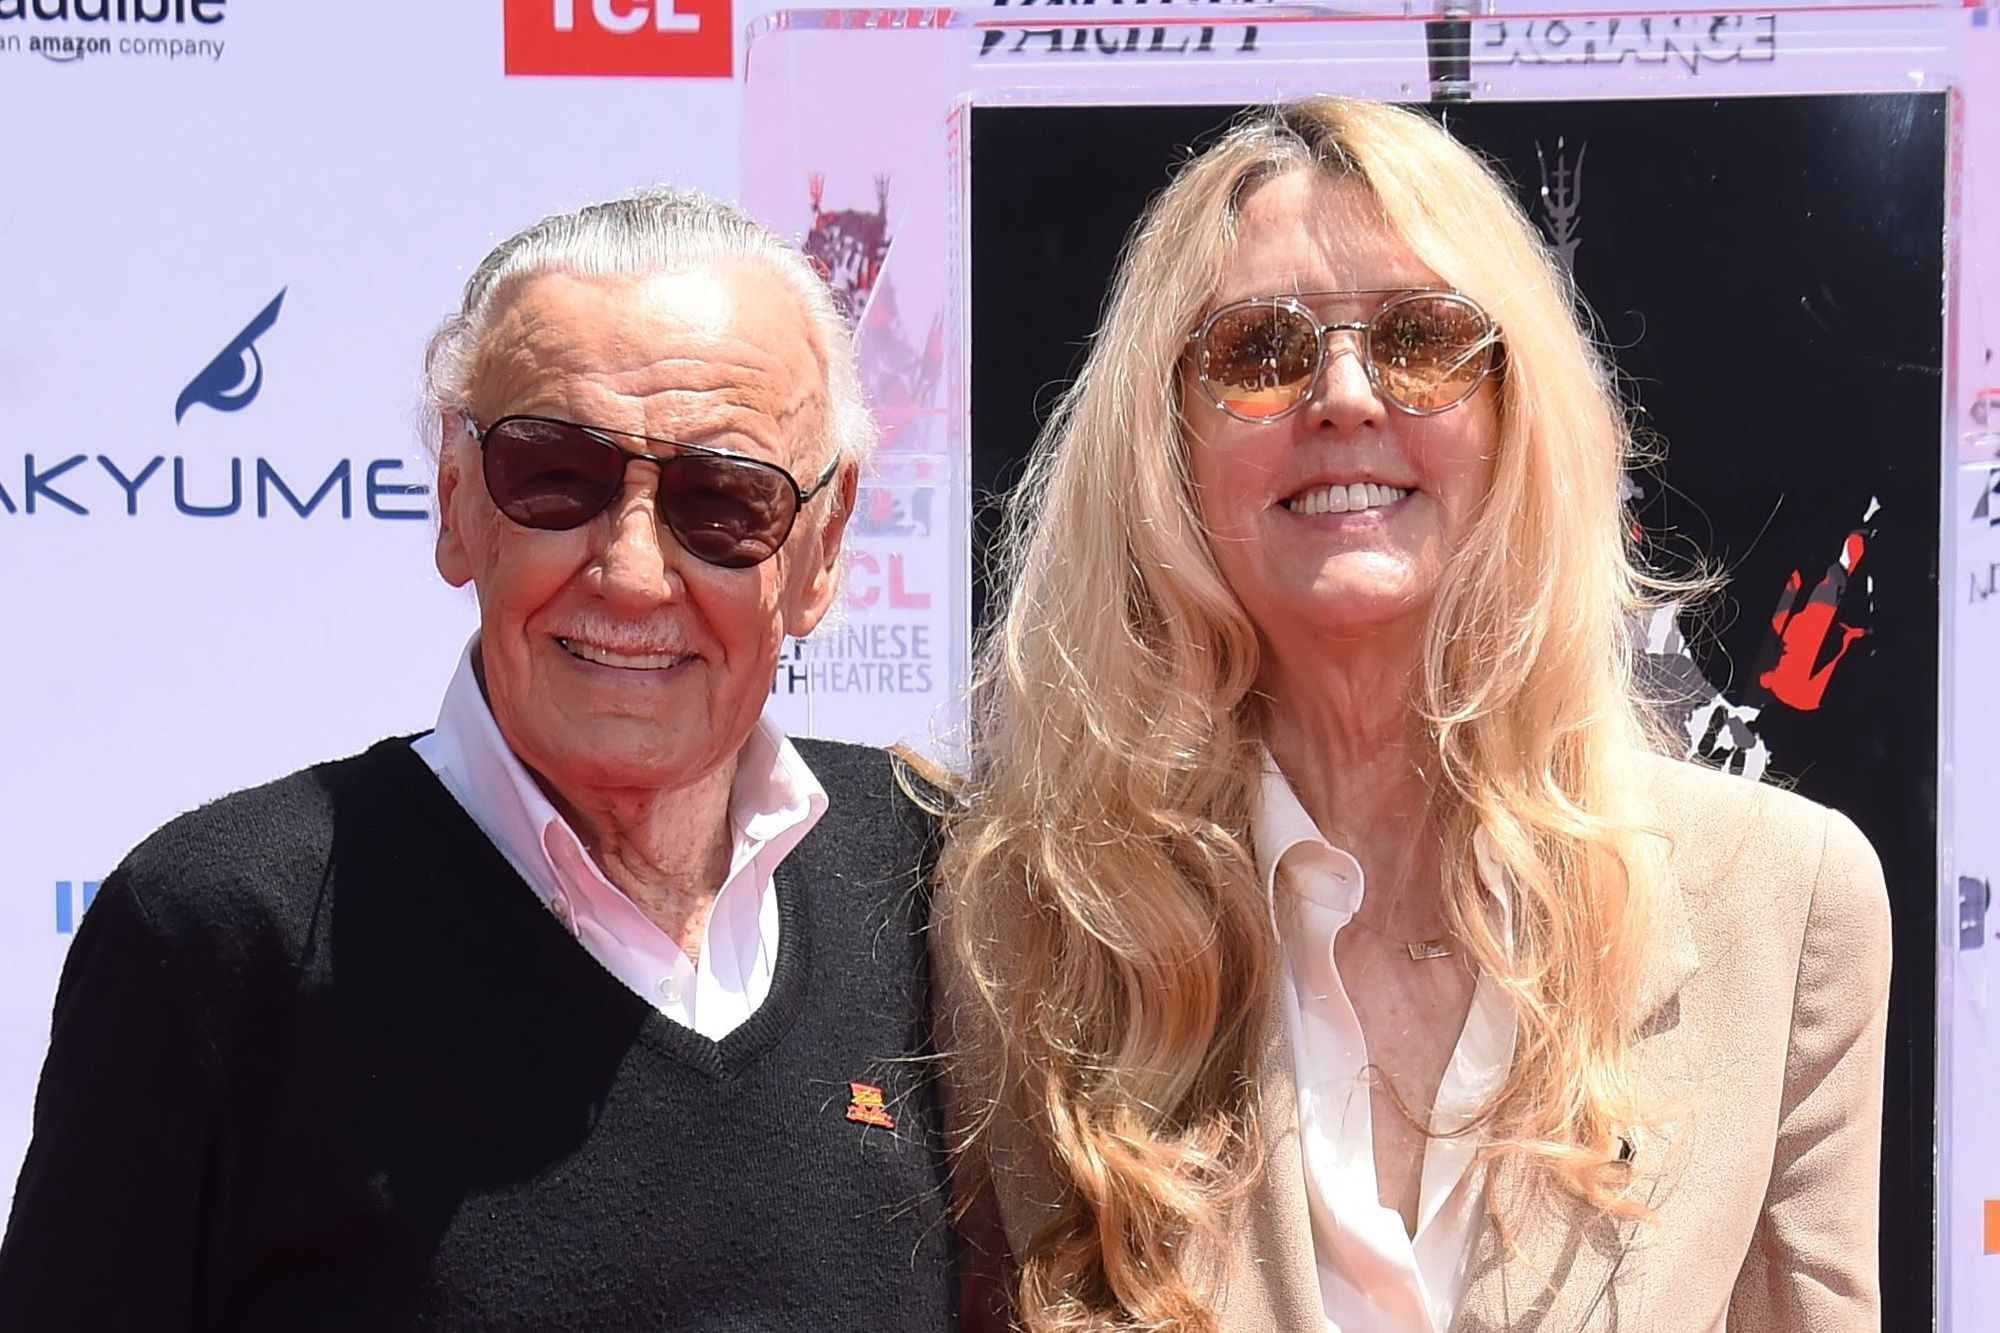 Stan Lee's Daughter sues the company for her father's intellectual property